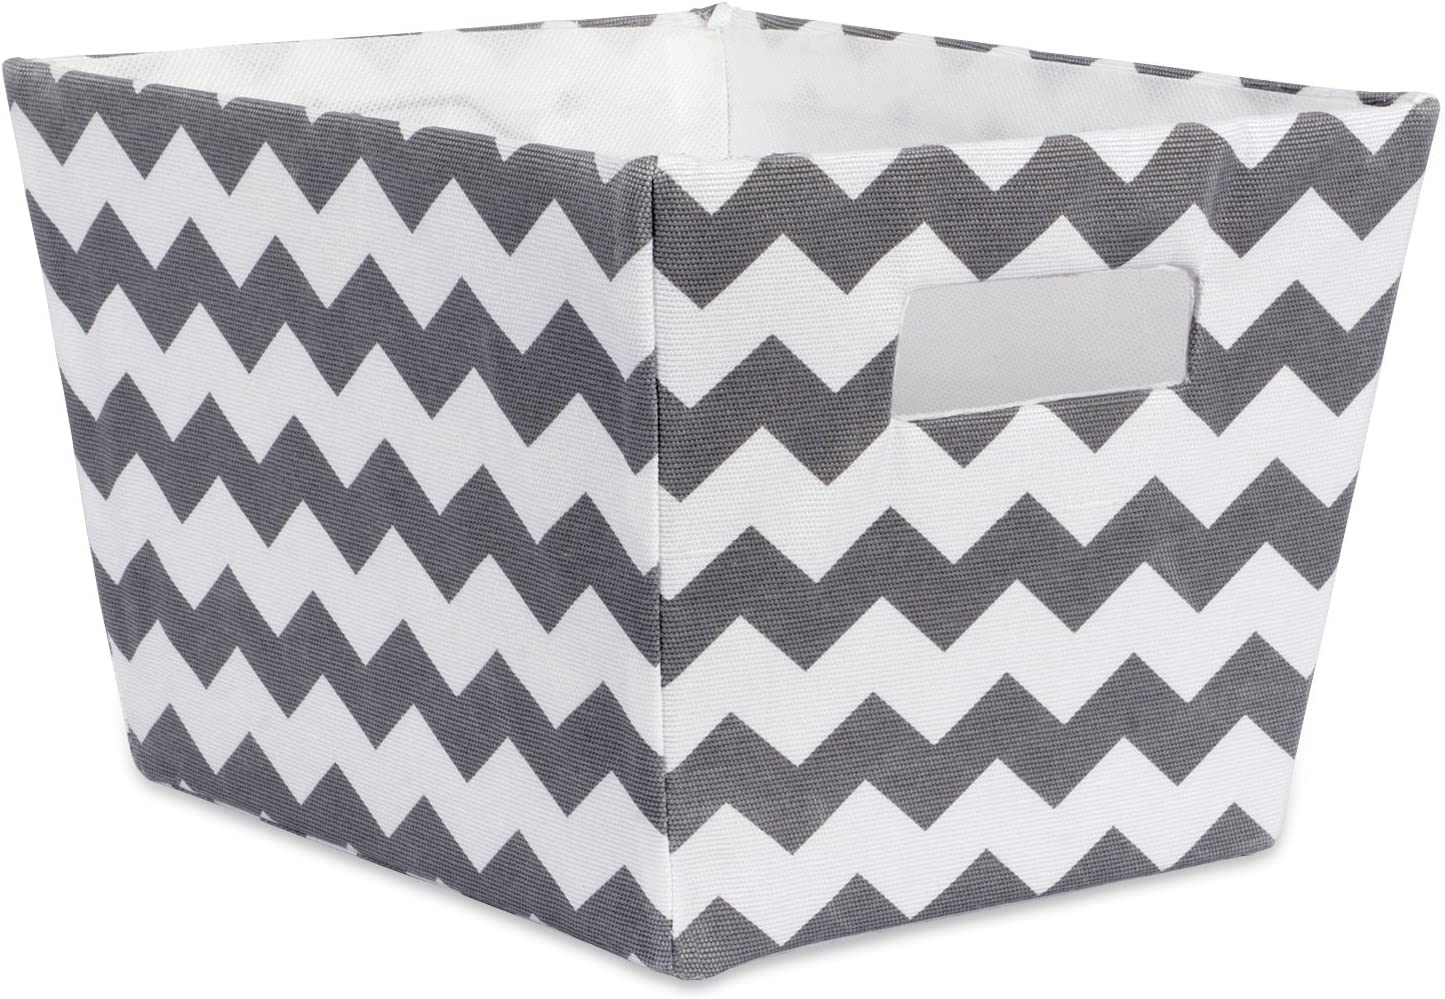 """DII Fabric Trapezoid Storage Container for Nurseries, Offices, Closets, Home Décor, Cube Organizer & Everyday Use, (Basket - 12x10x7.75"""") Chevron Gray"""